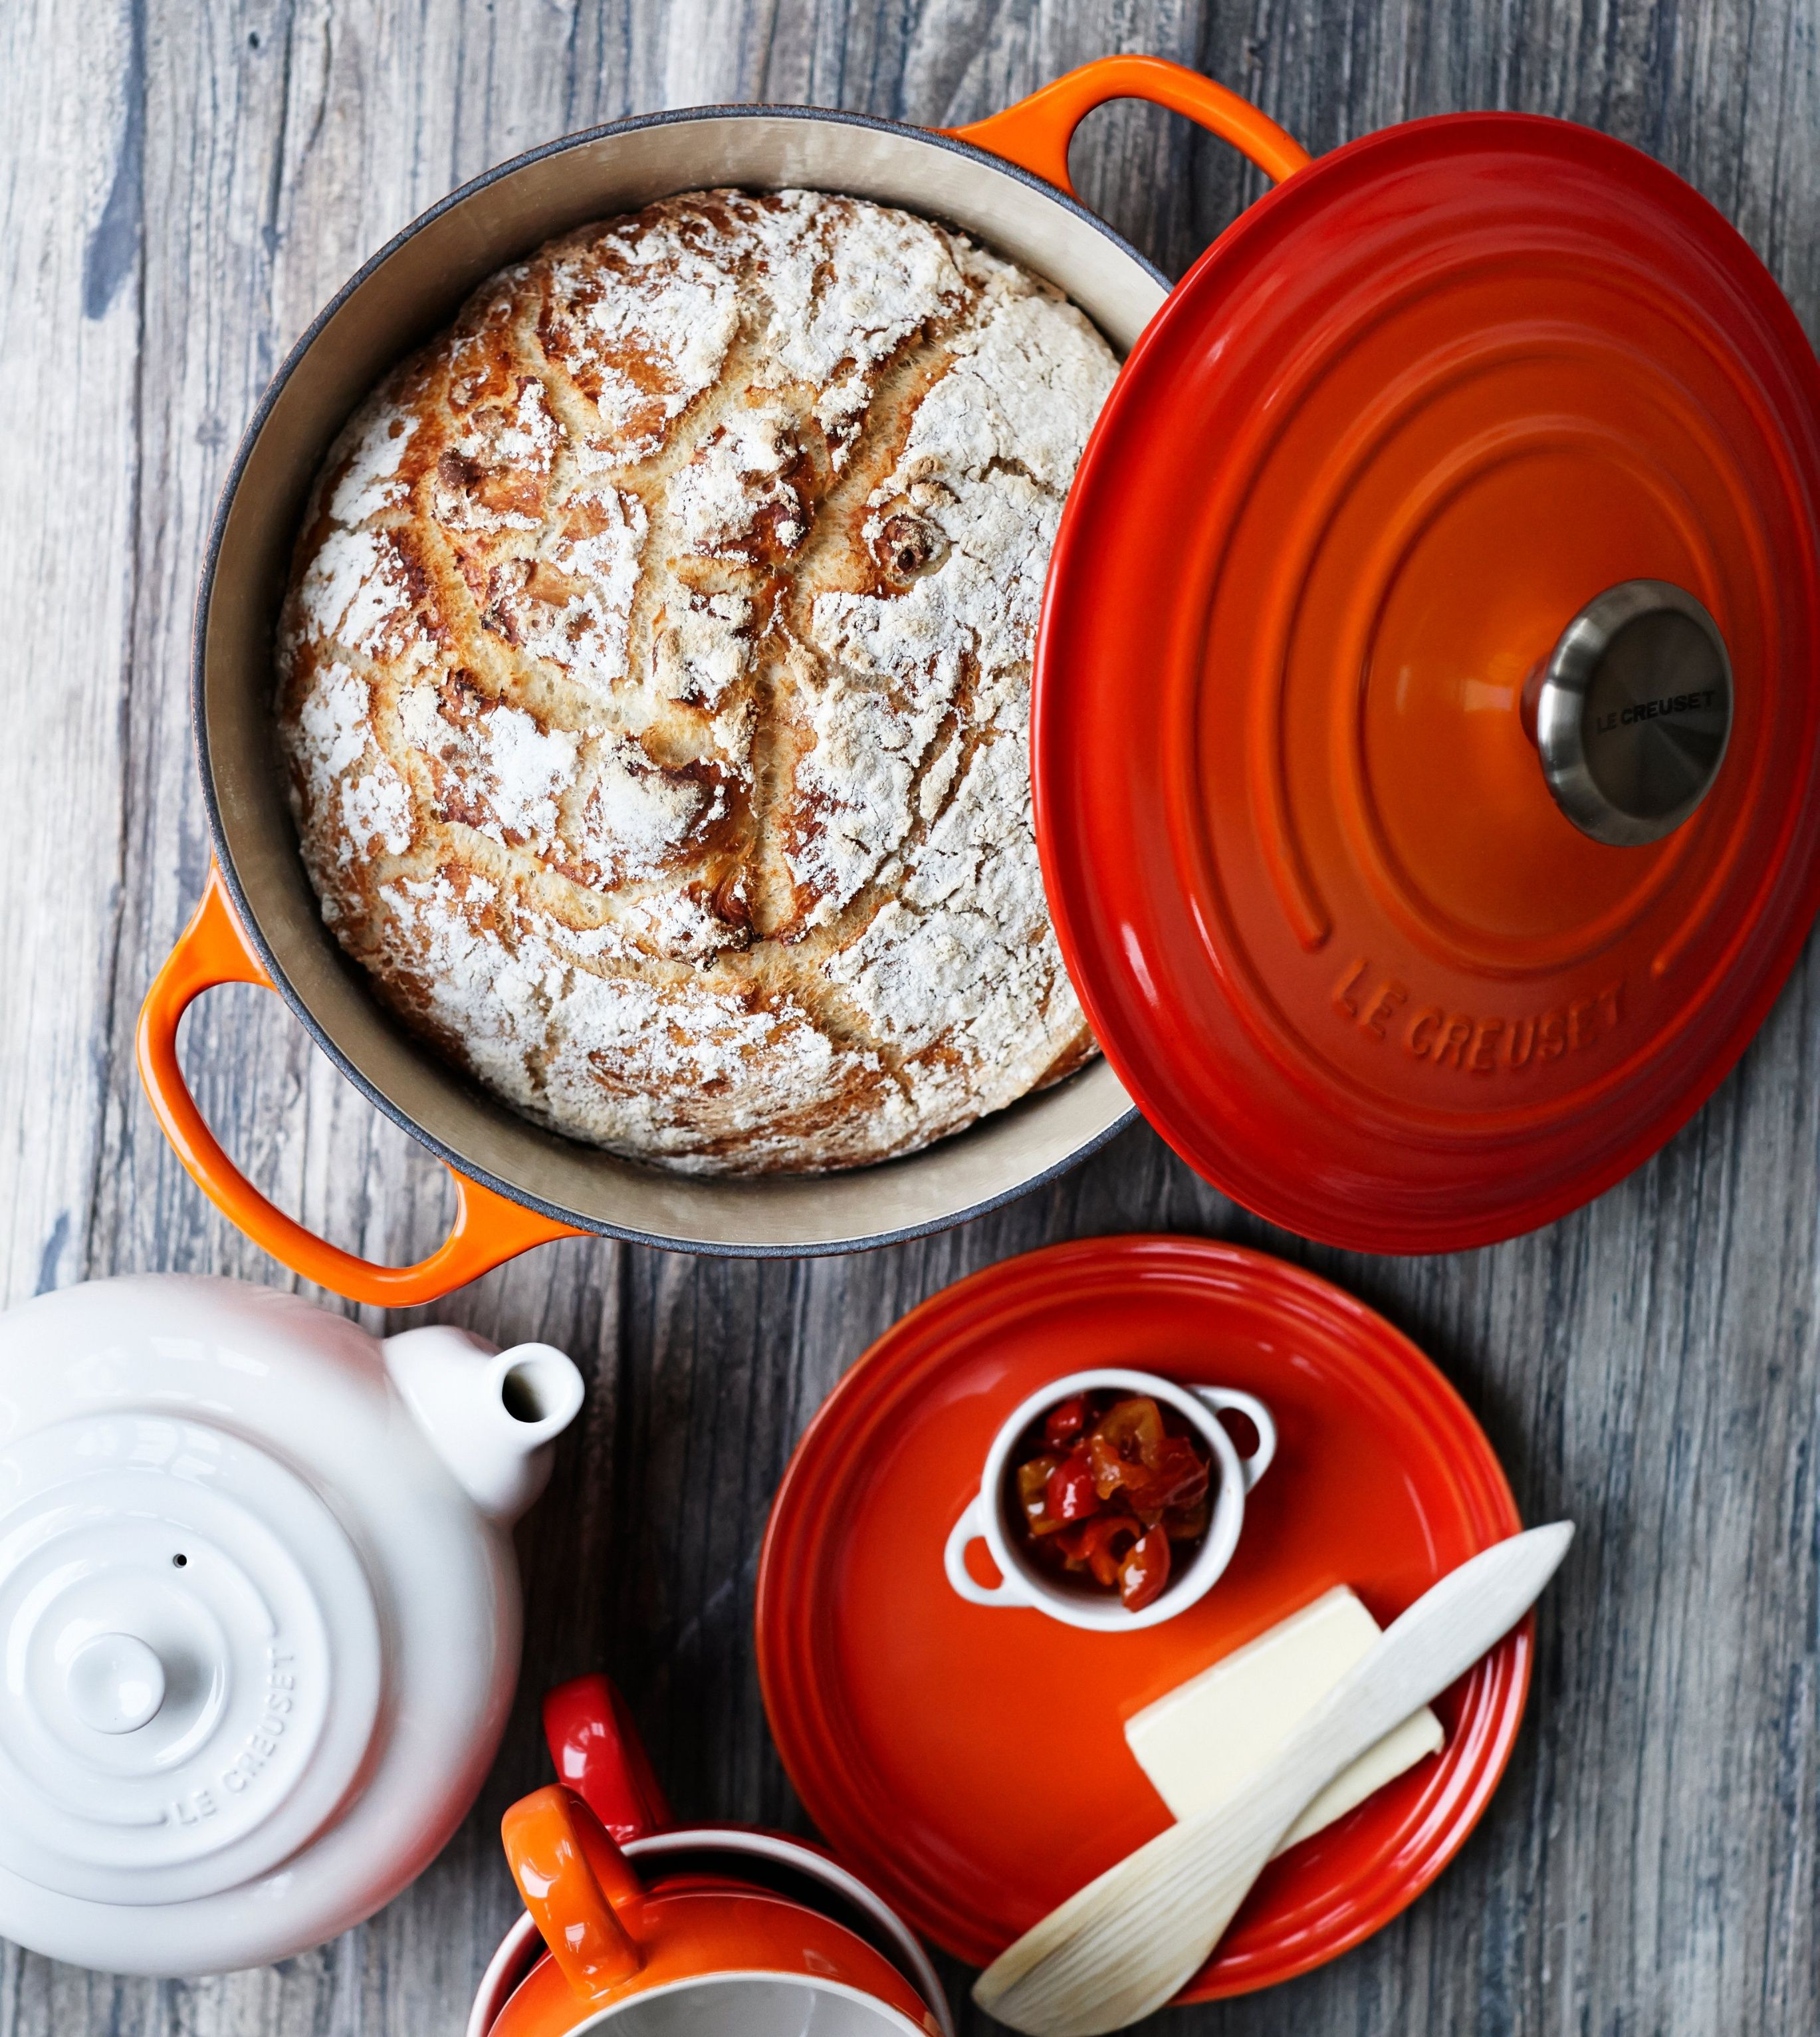 Wondering What To Bake In A Dutch Oven Or How To Make An Easy Dutch Oven Bread Recipe At Home The Simple Le Creuset 5 Le Creuset Recipes Dutch Oven Bread Food